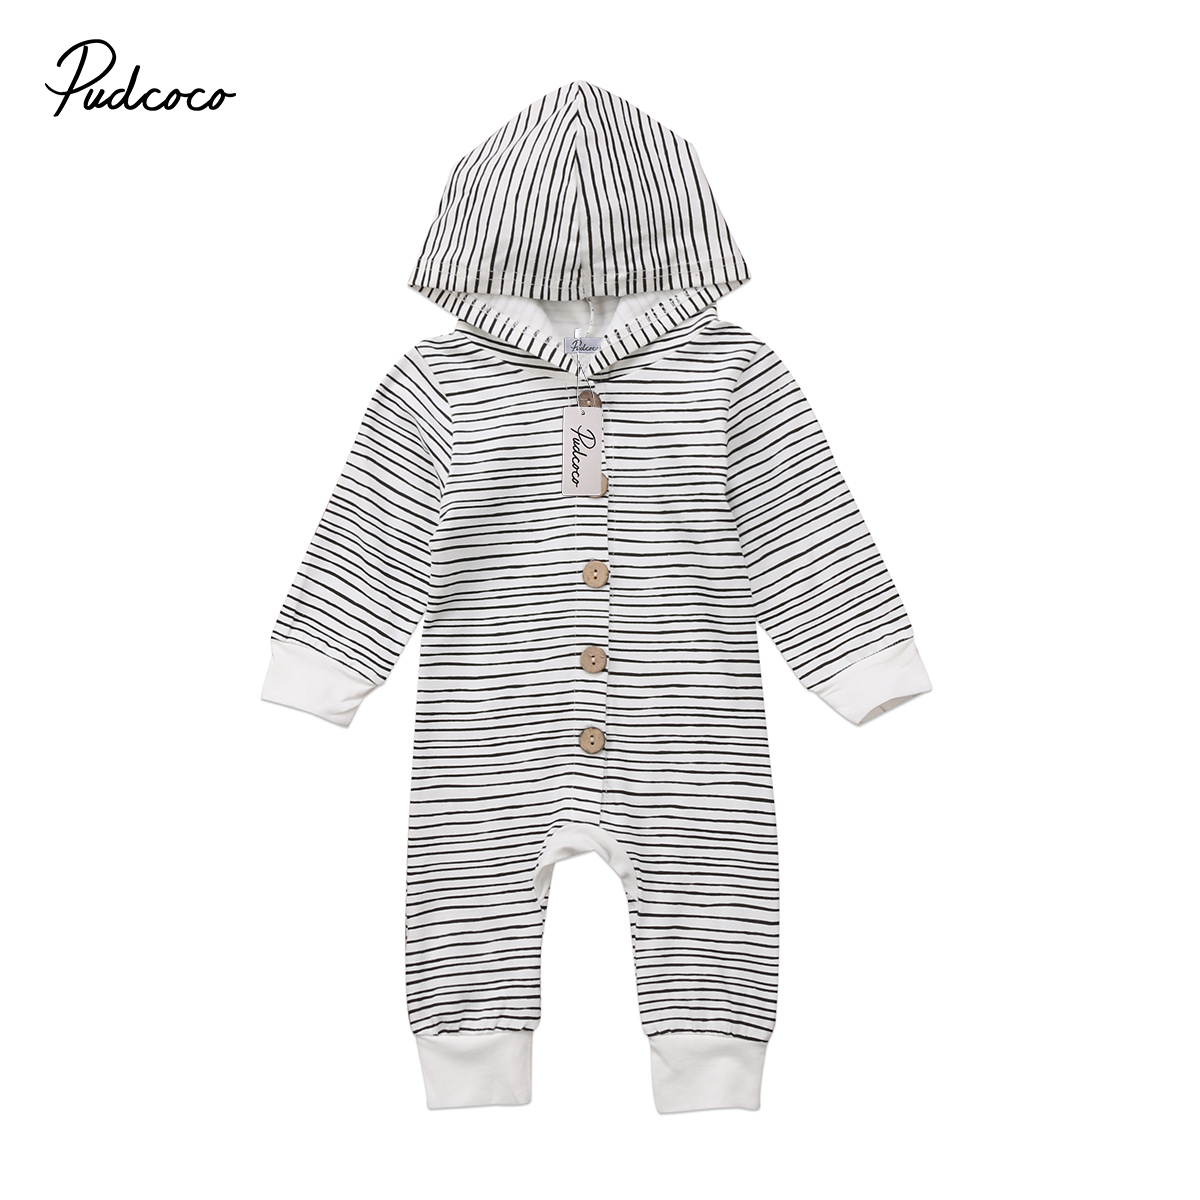 2017 New Year Baby Boy Girl Warm Infant Hooded Long Sleeve Striped Romper Jumpsuit Hooded Clothes Outfit